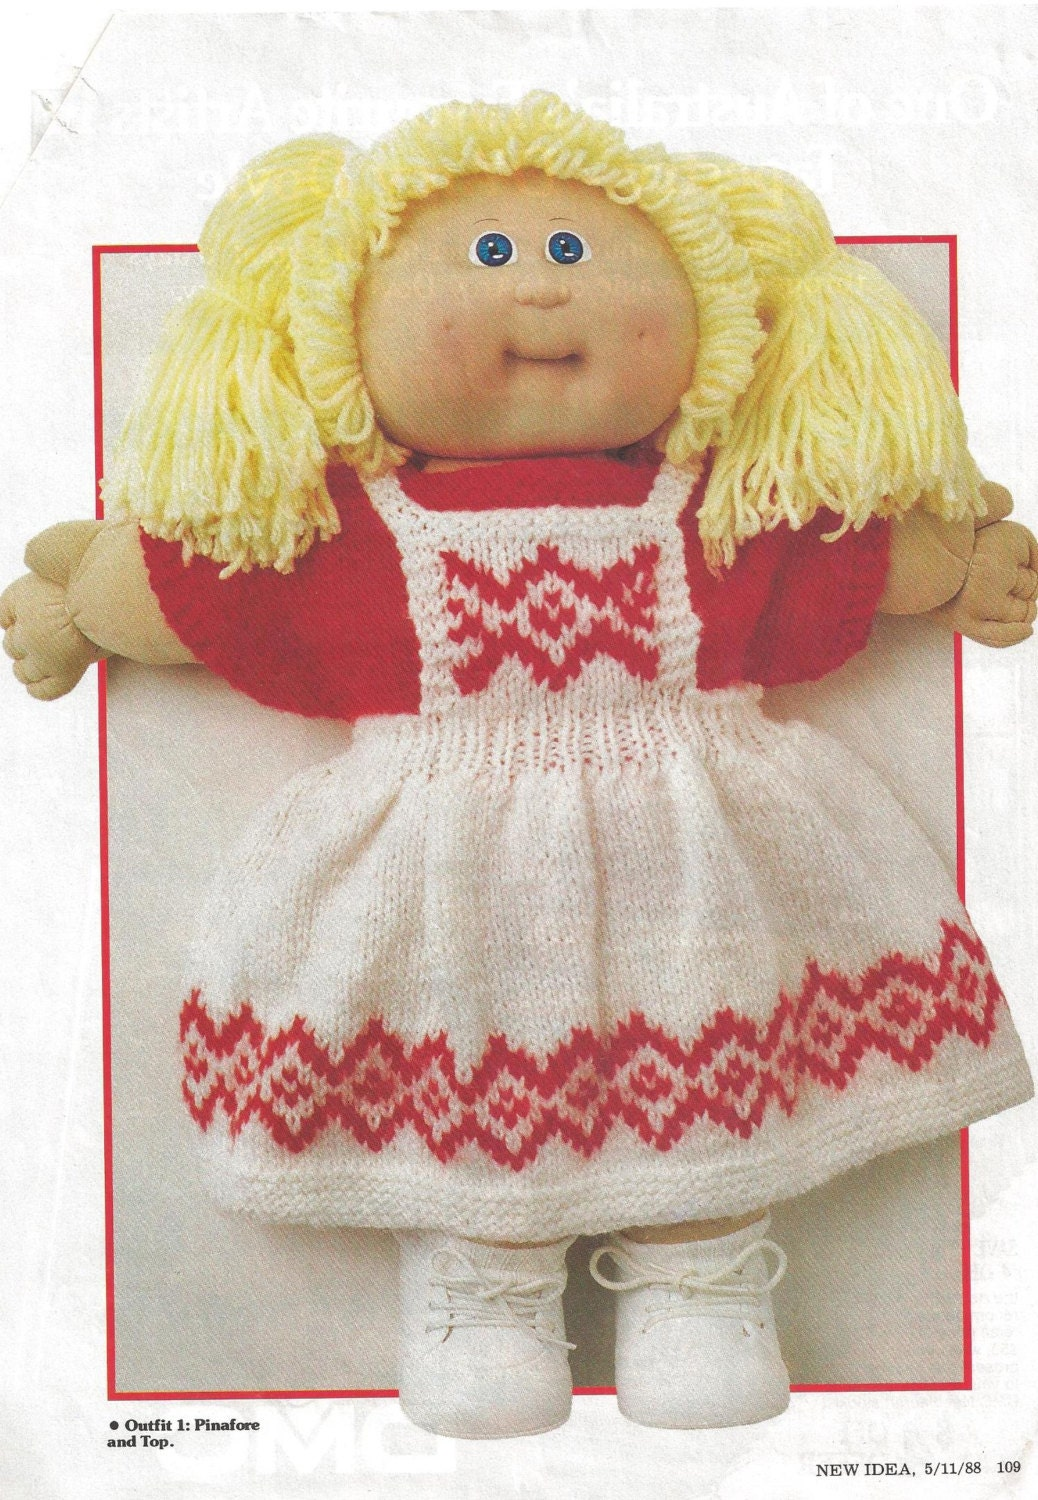 Knitting Pattern For Cabbage Patch Doll Clothes : Knitting Pattern Vintage Cabbage Patch Doll Four Outfits 1988